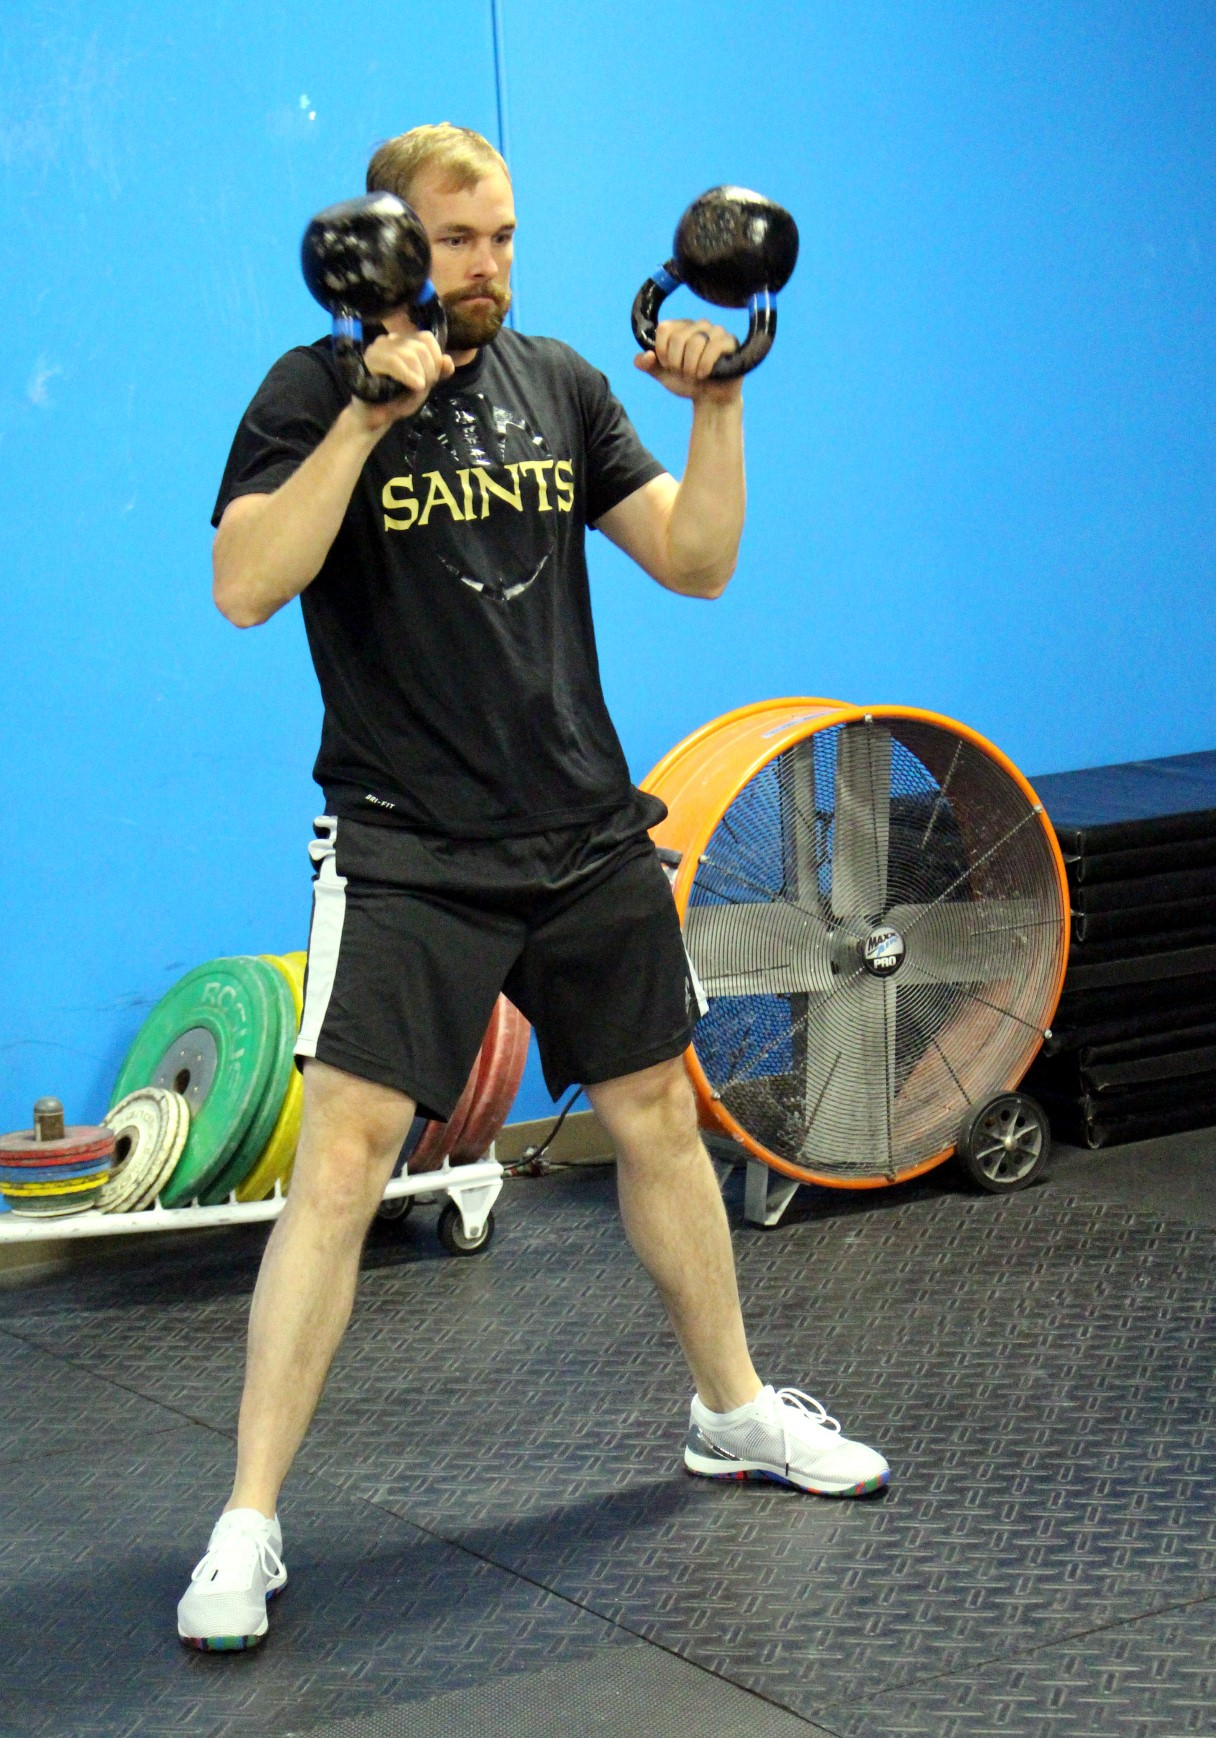 Mike doing a Double Kettlebell Clean.